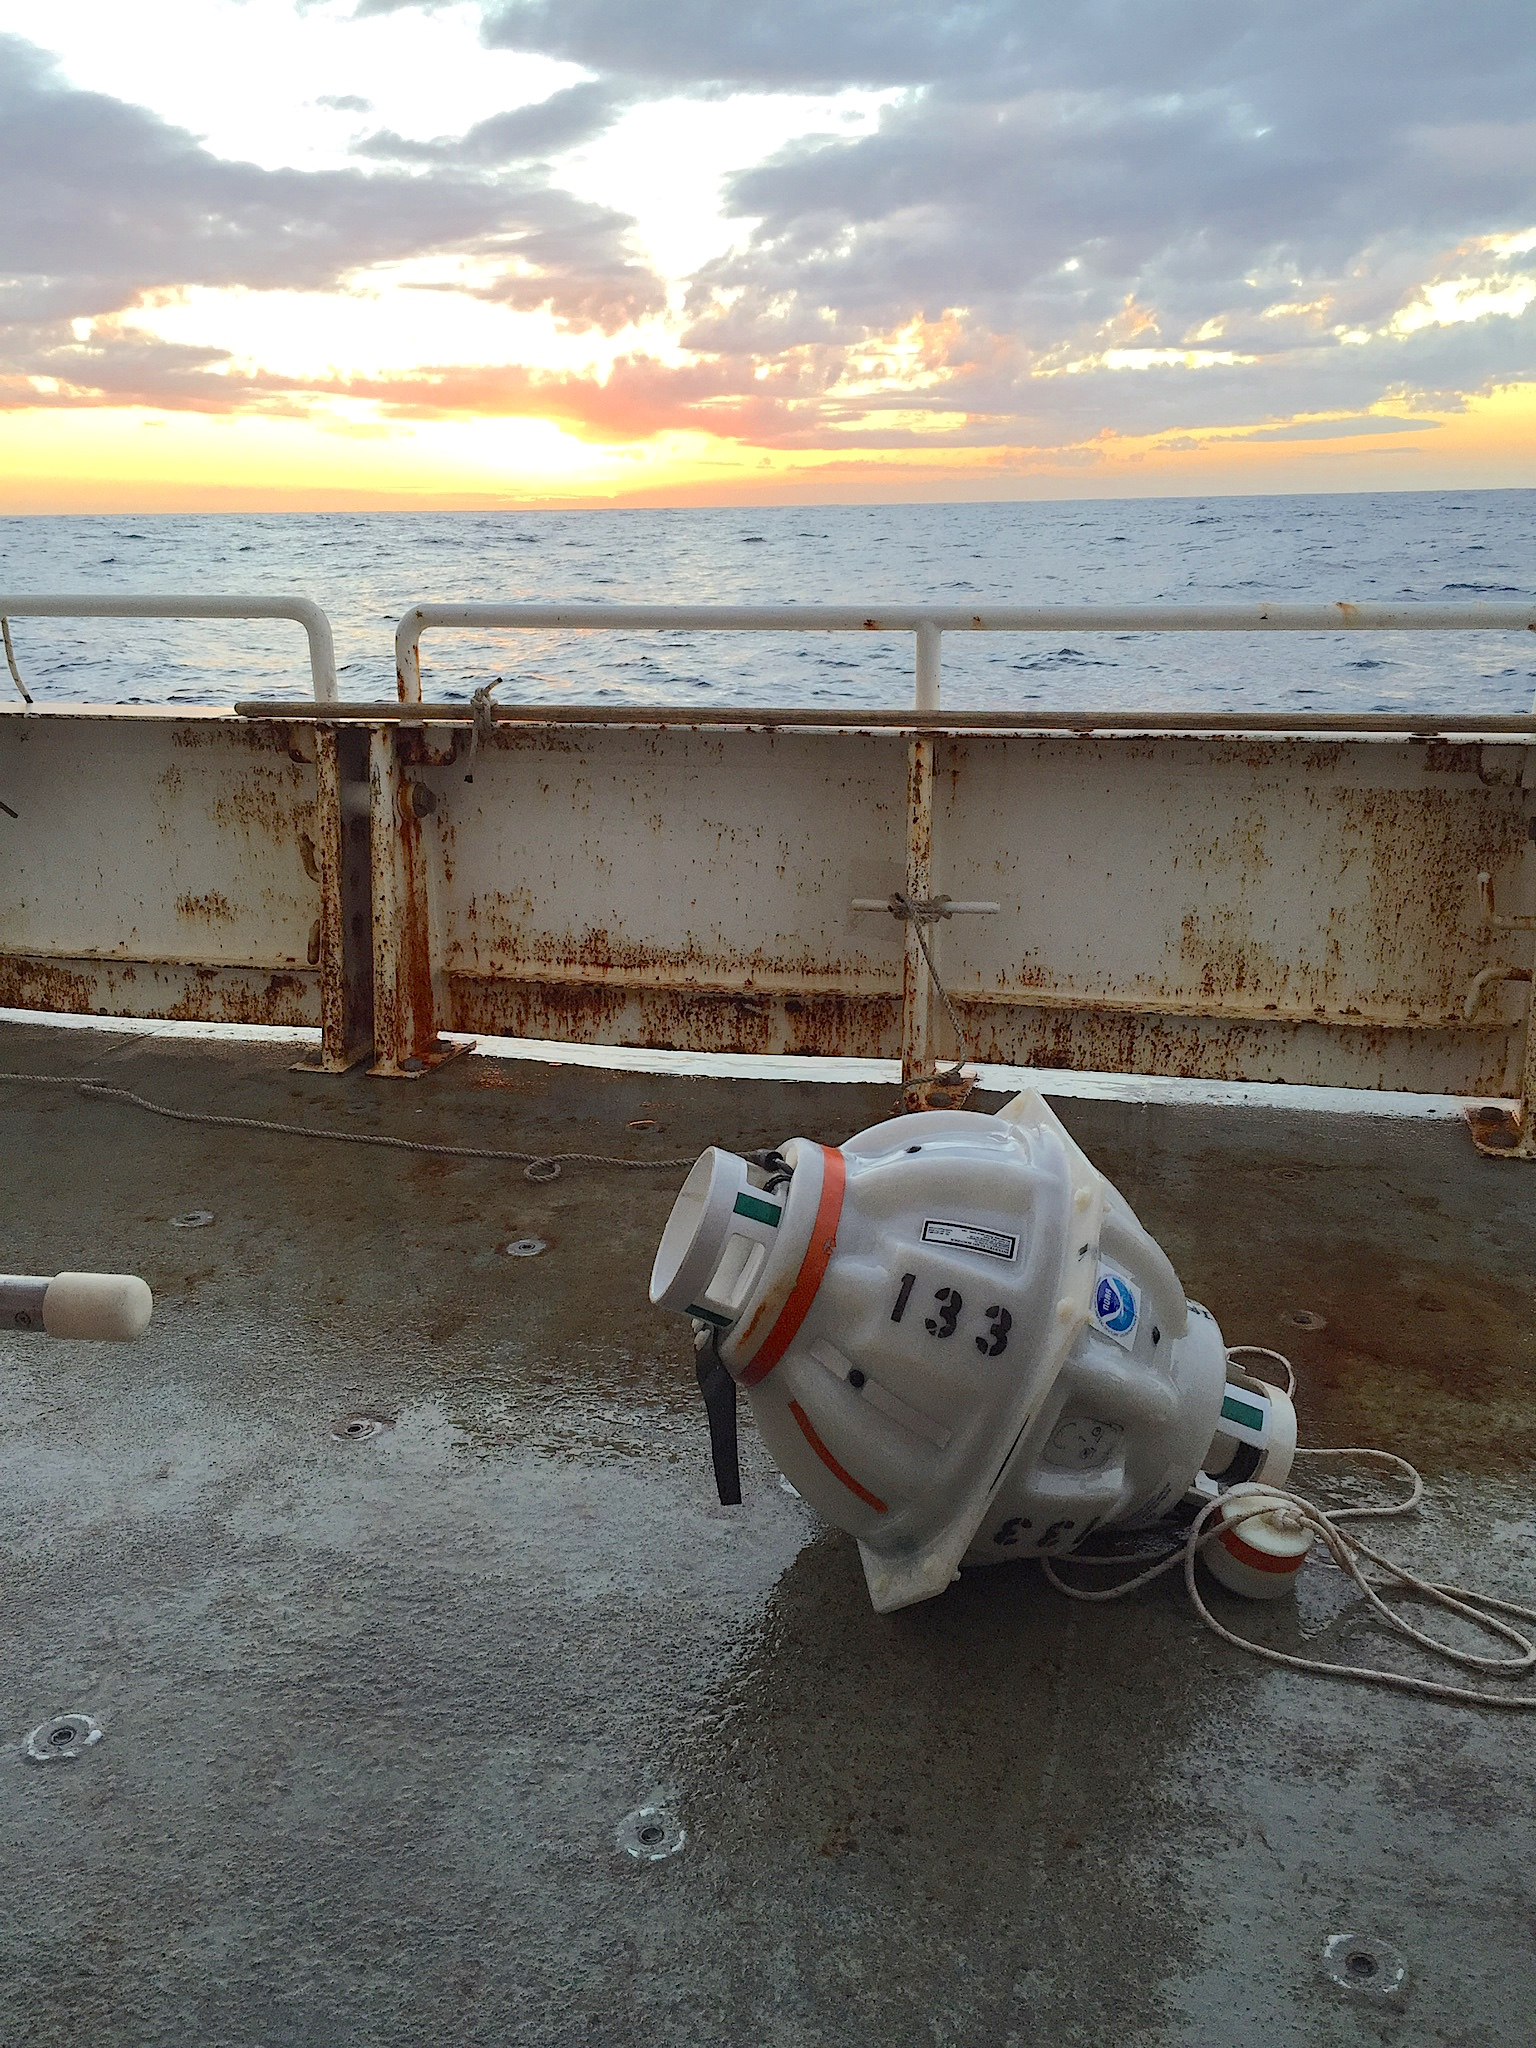 Inverted echo sounder retrieved from the ocean floor. Image credit: NOAA